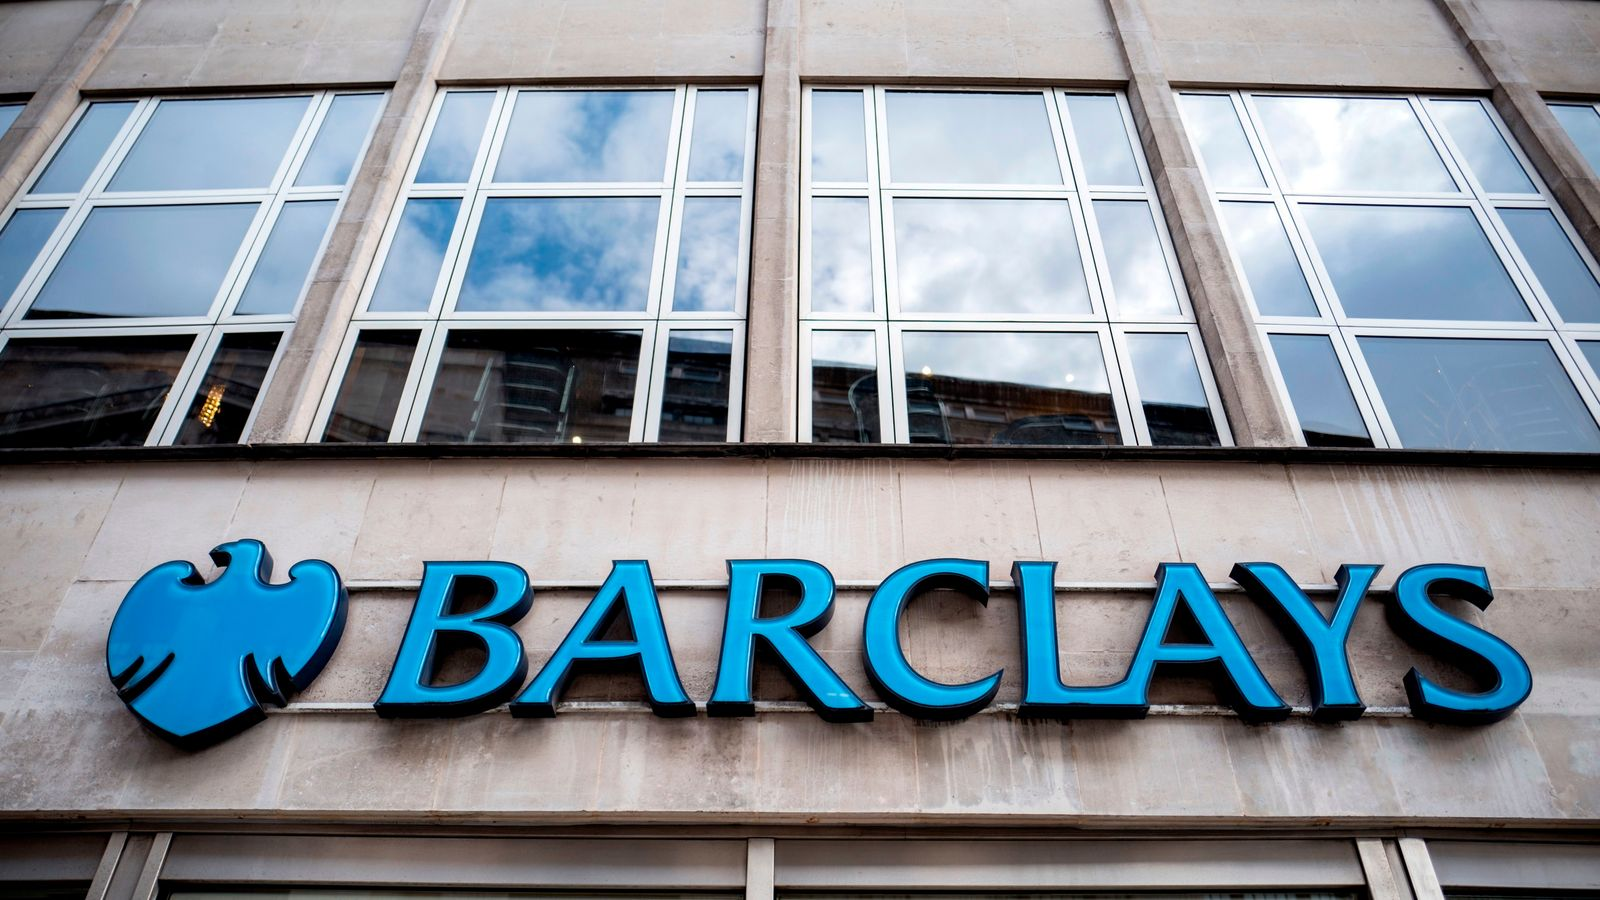 Grimstone Rules Himself Out Of Race For Barclays